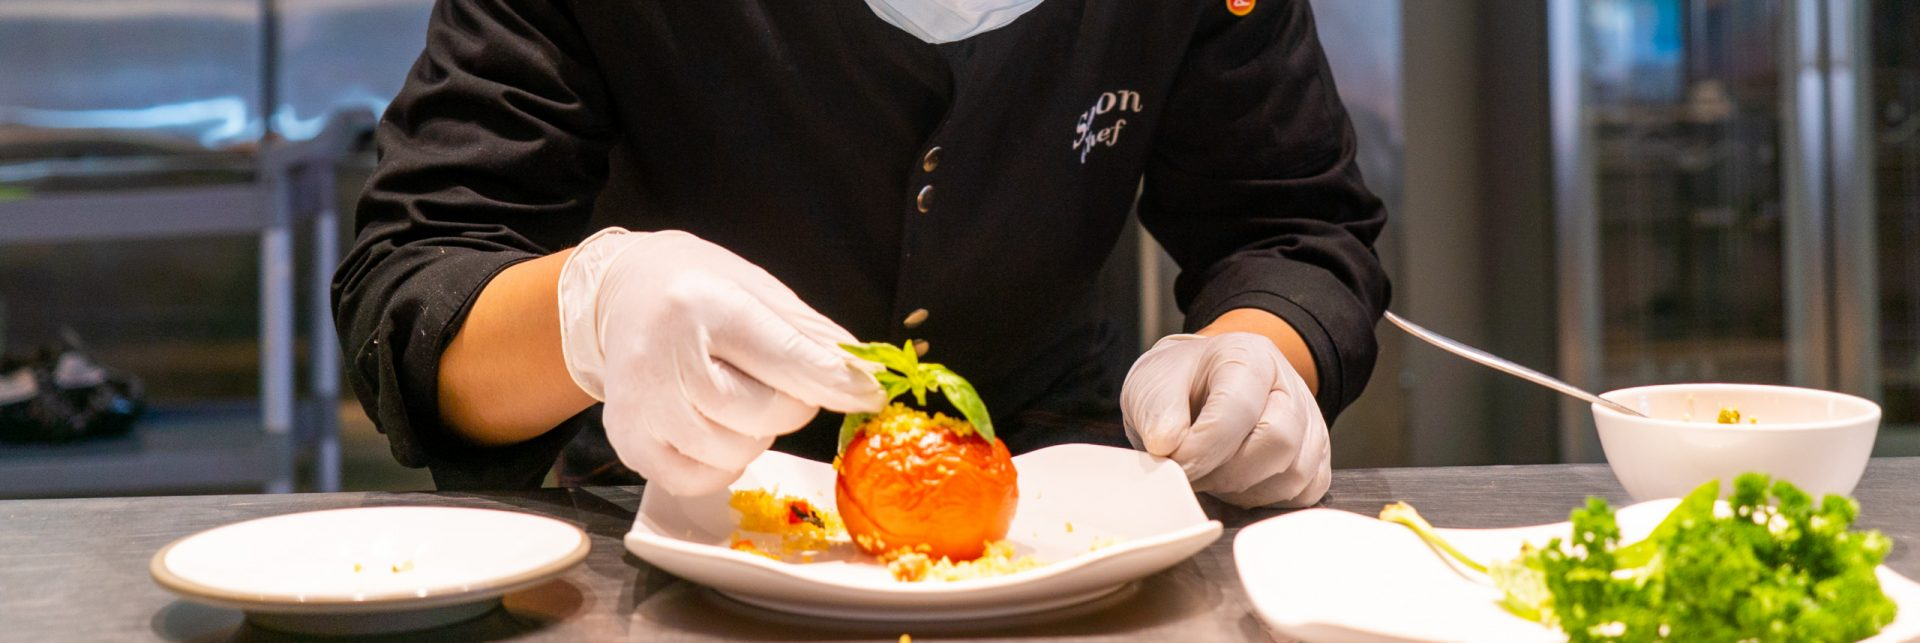 corporate high-end catering solution and education high-end catering